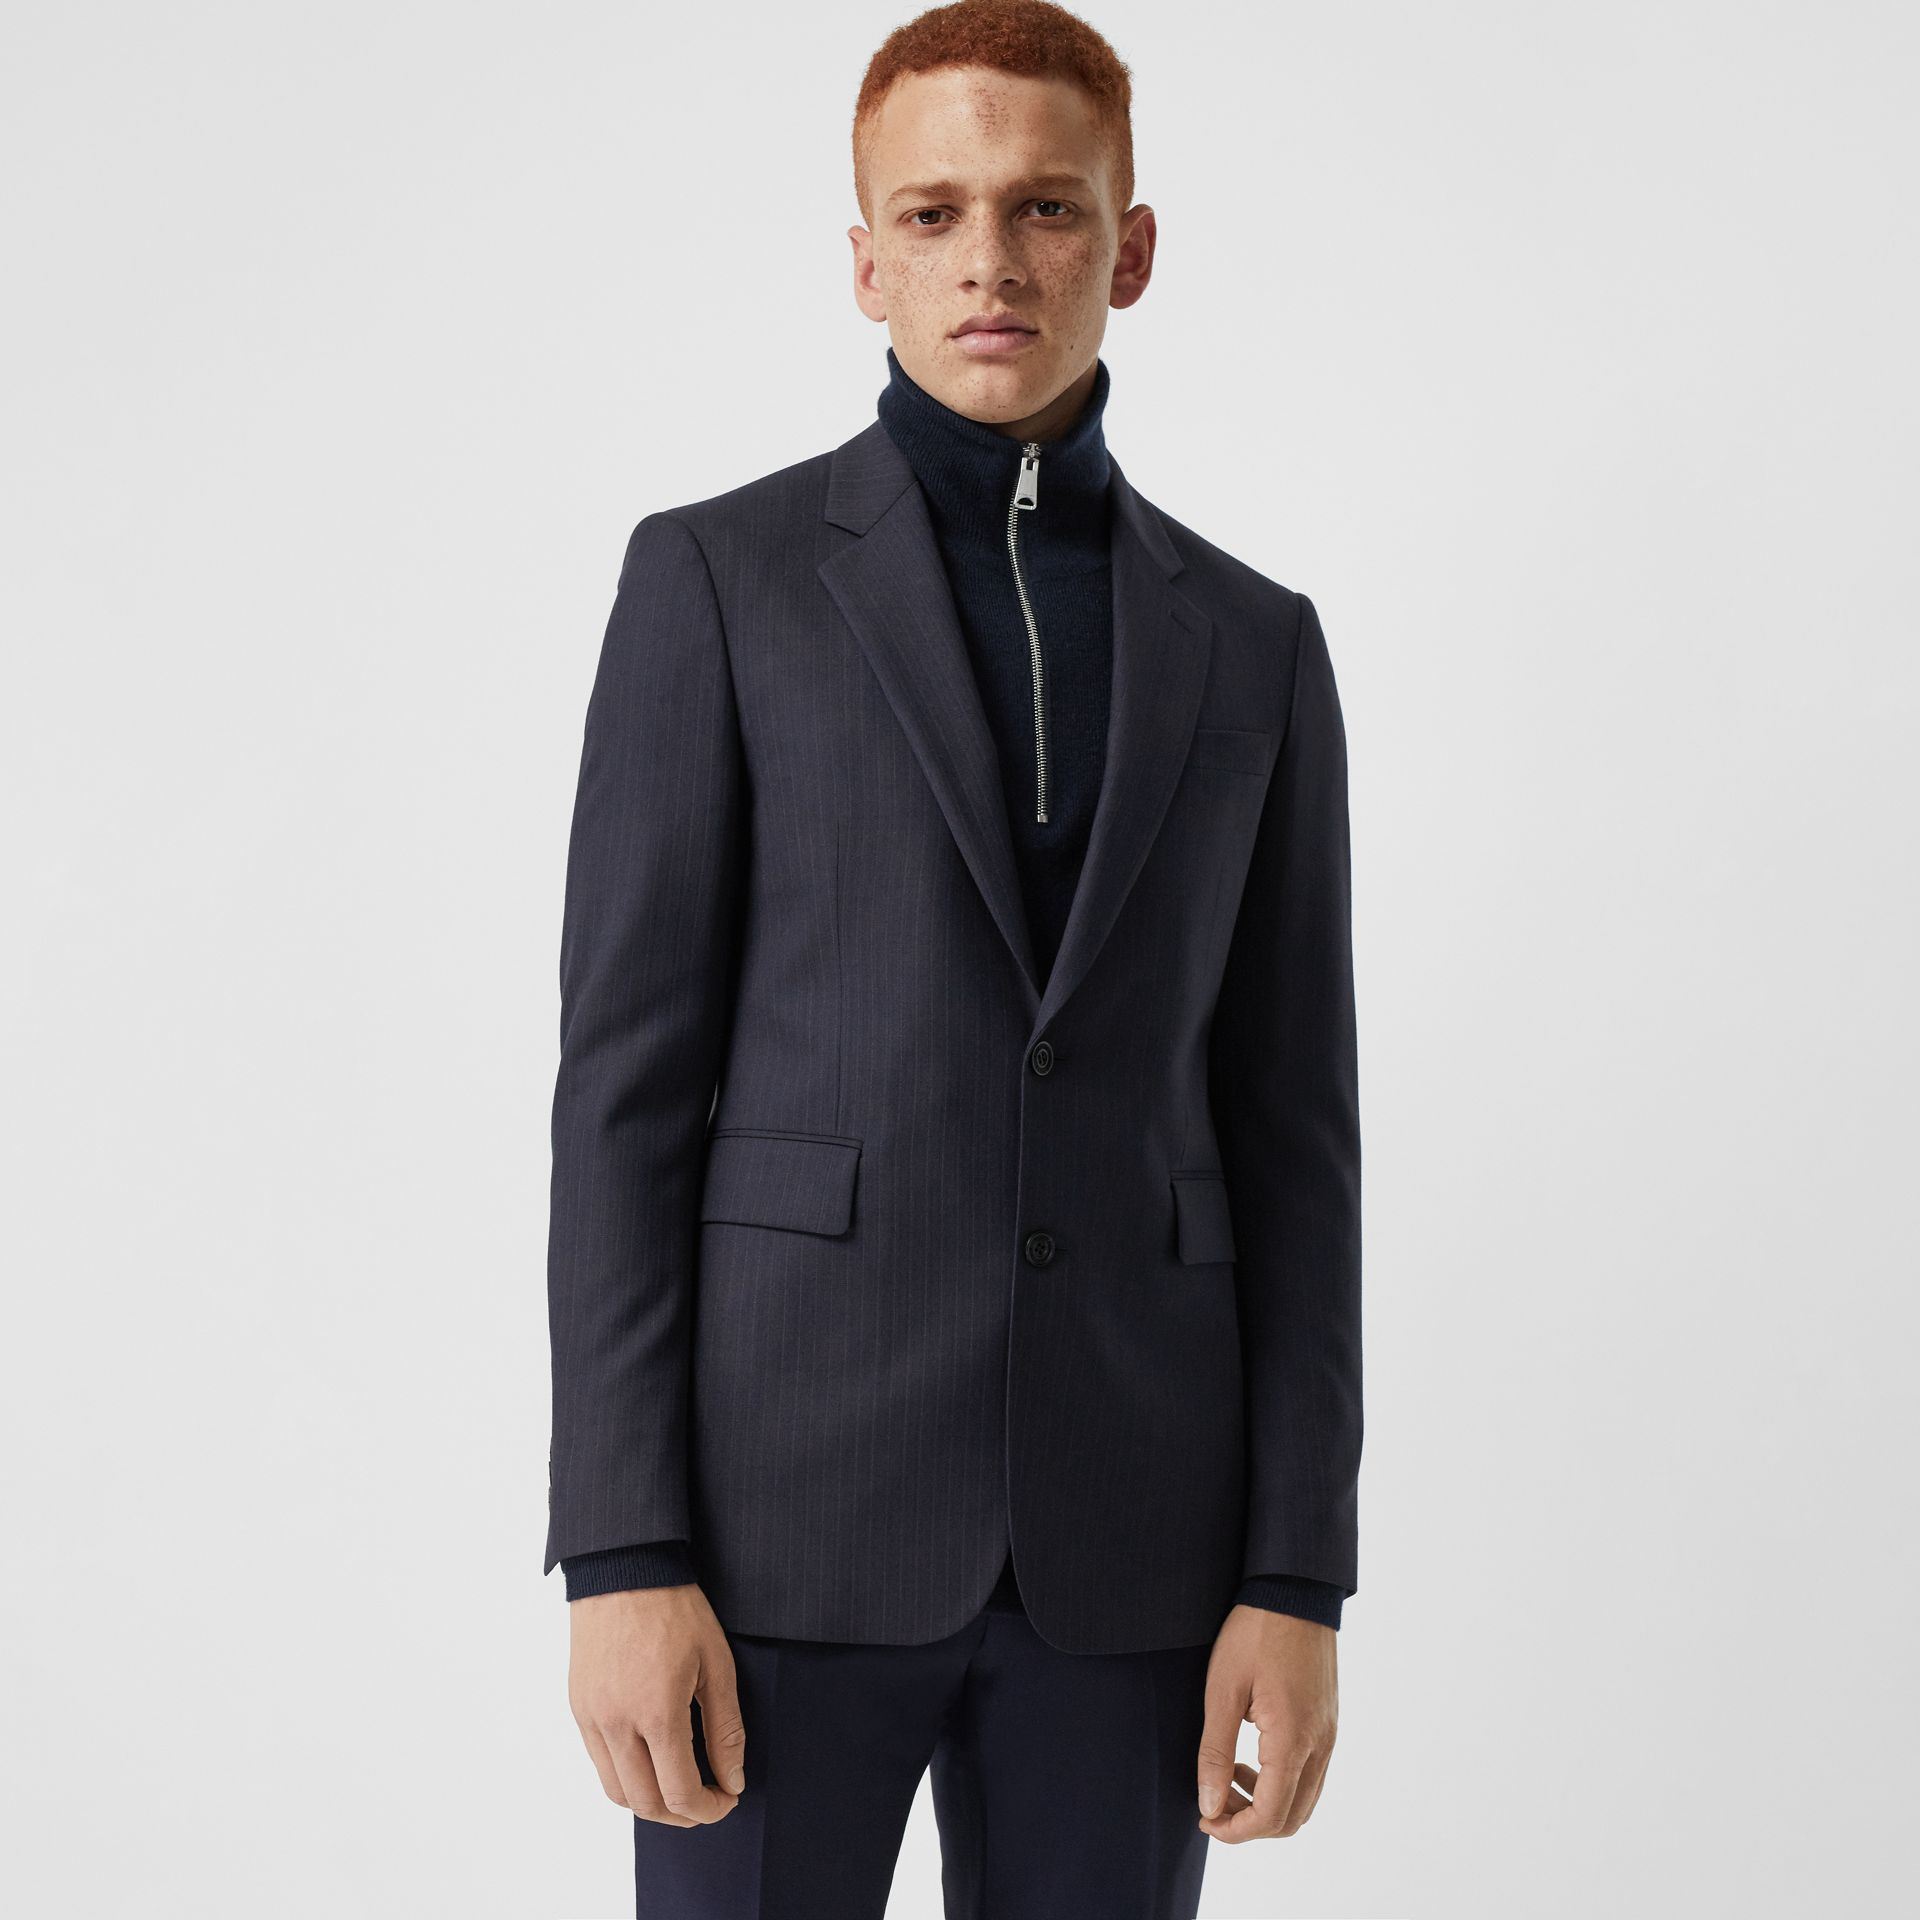 Classic Fit Pinstripe Wool Tailored Jacket in Navy Stripe - Men | Burberry United Kingdom - gallery image 4